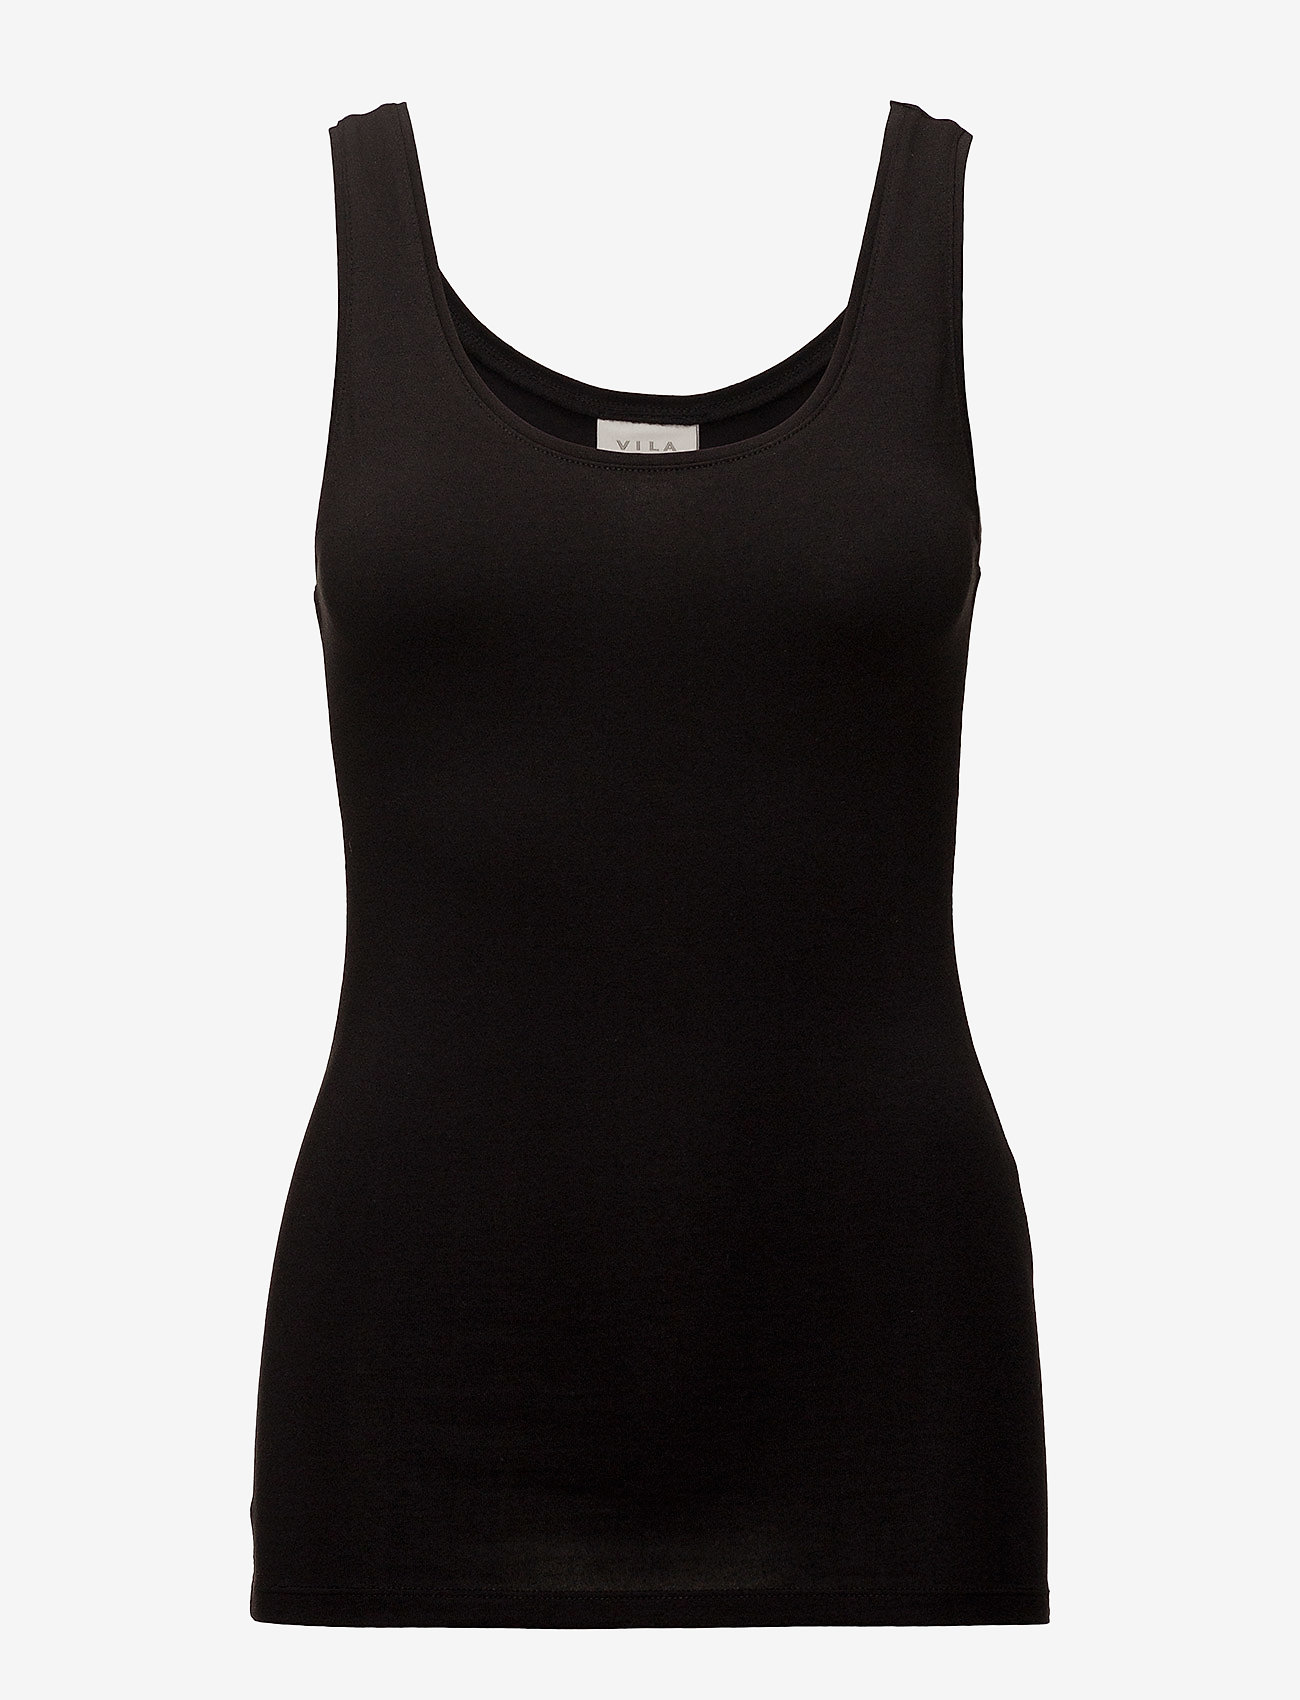 Vila - VIOFFICIEL NEW TANK TOP - NOOS - sleeveless tops - black - 0